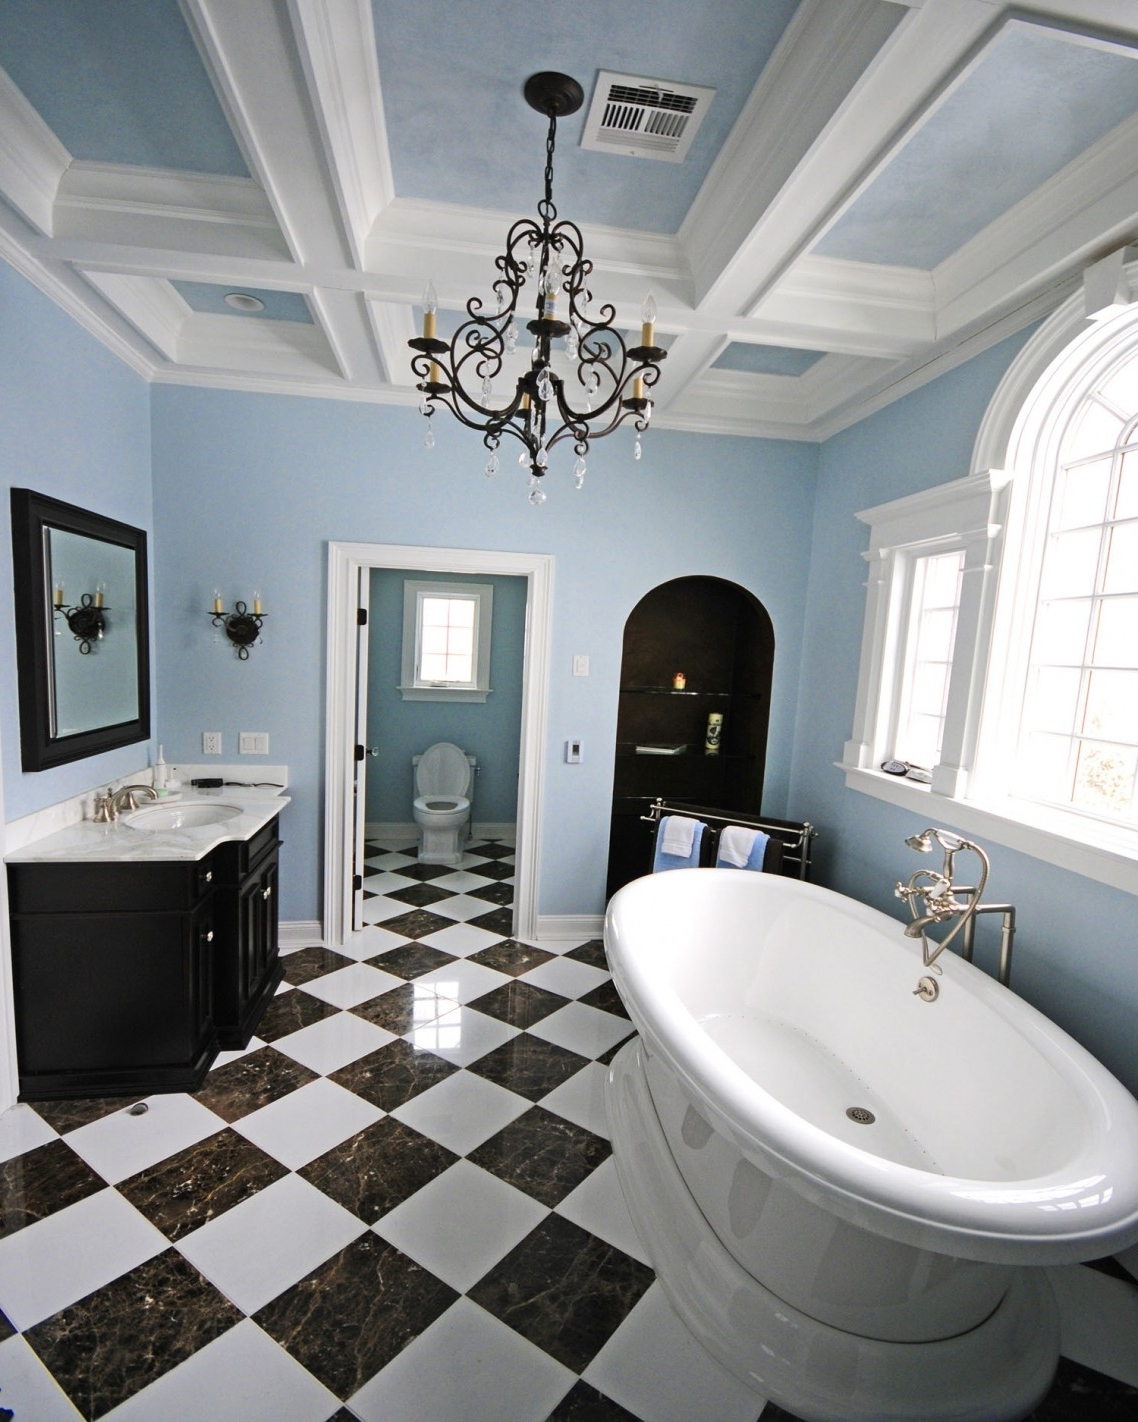 Bathroom Ideas: Bathroom Chandeliers With Black And White Tiles Regarding Most Recent Bathroom Chandeliers (View 13 of 20)